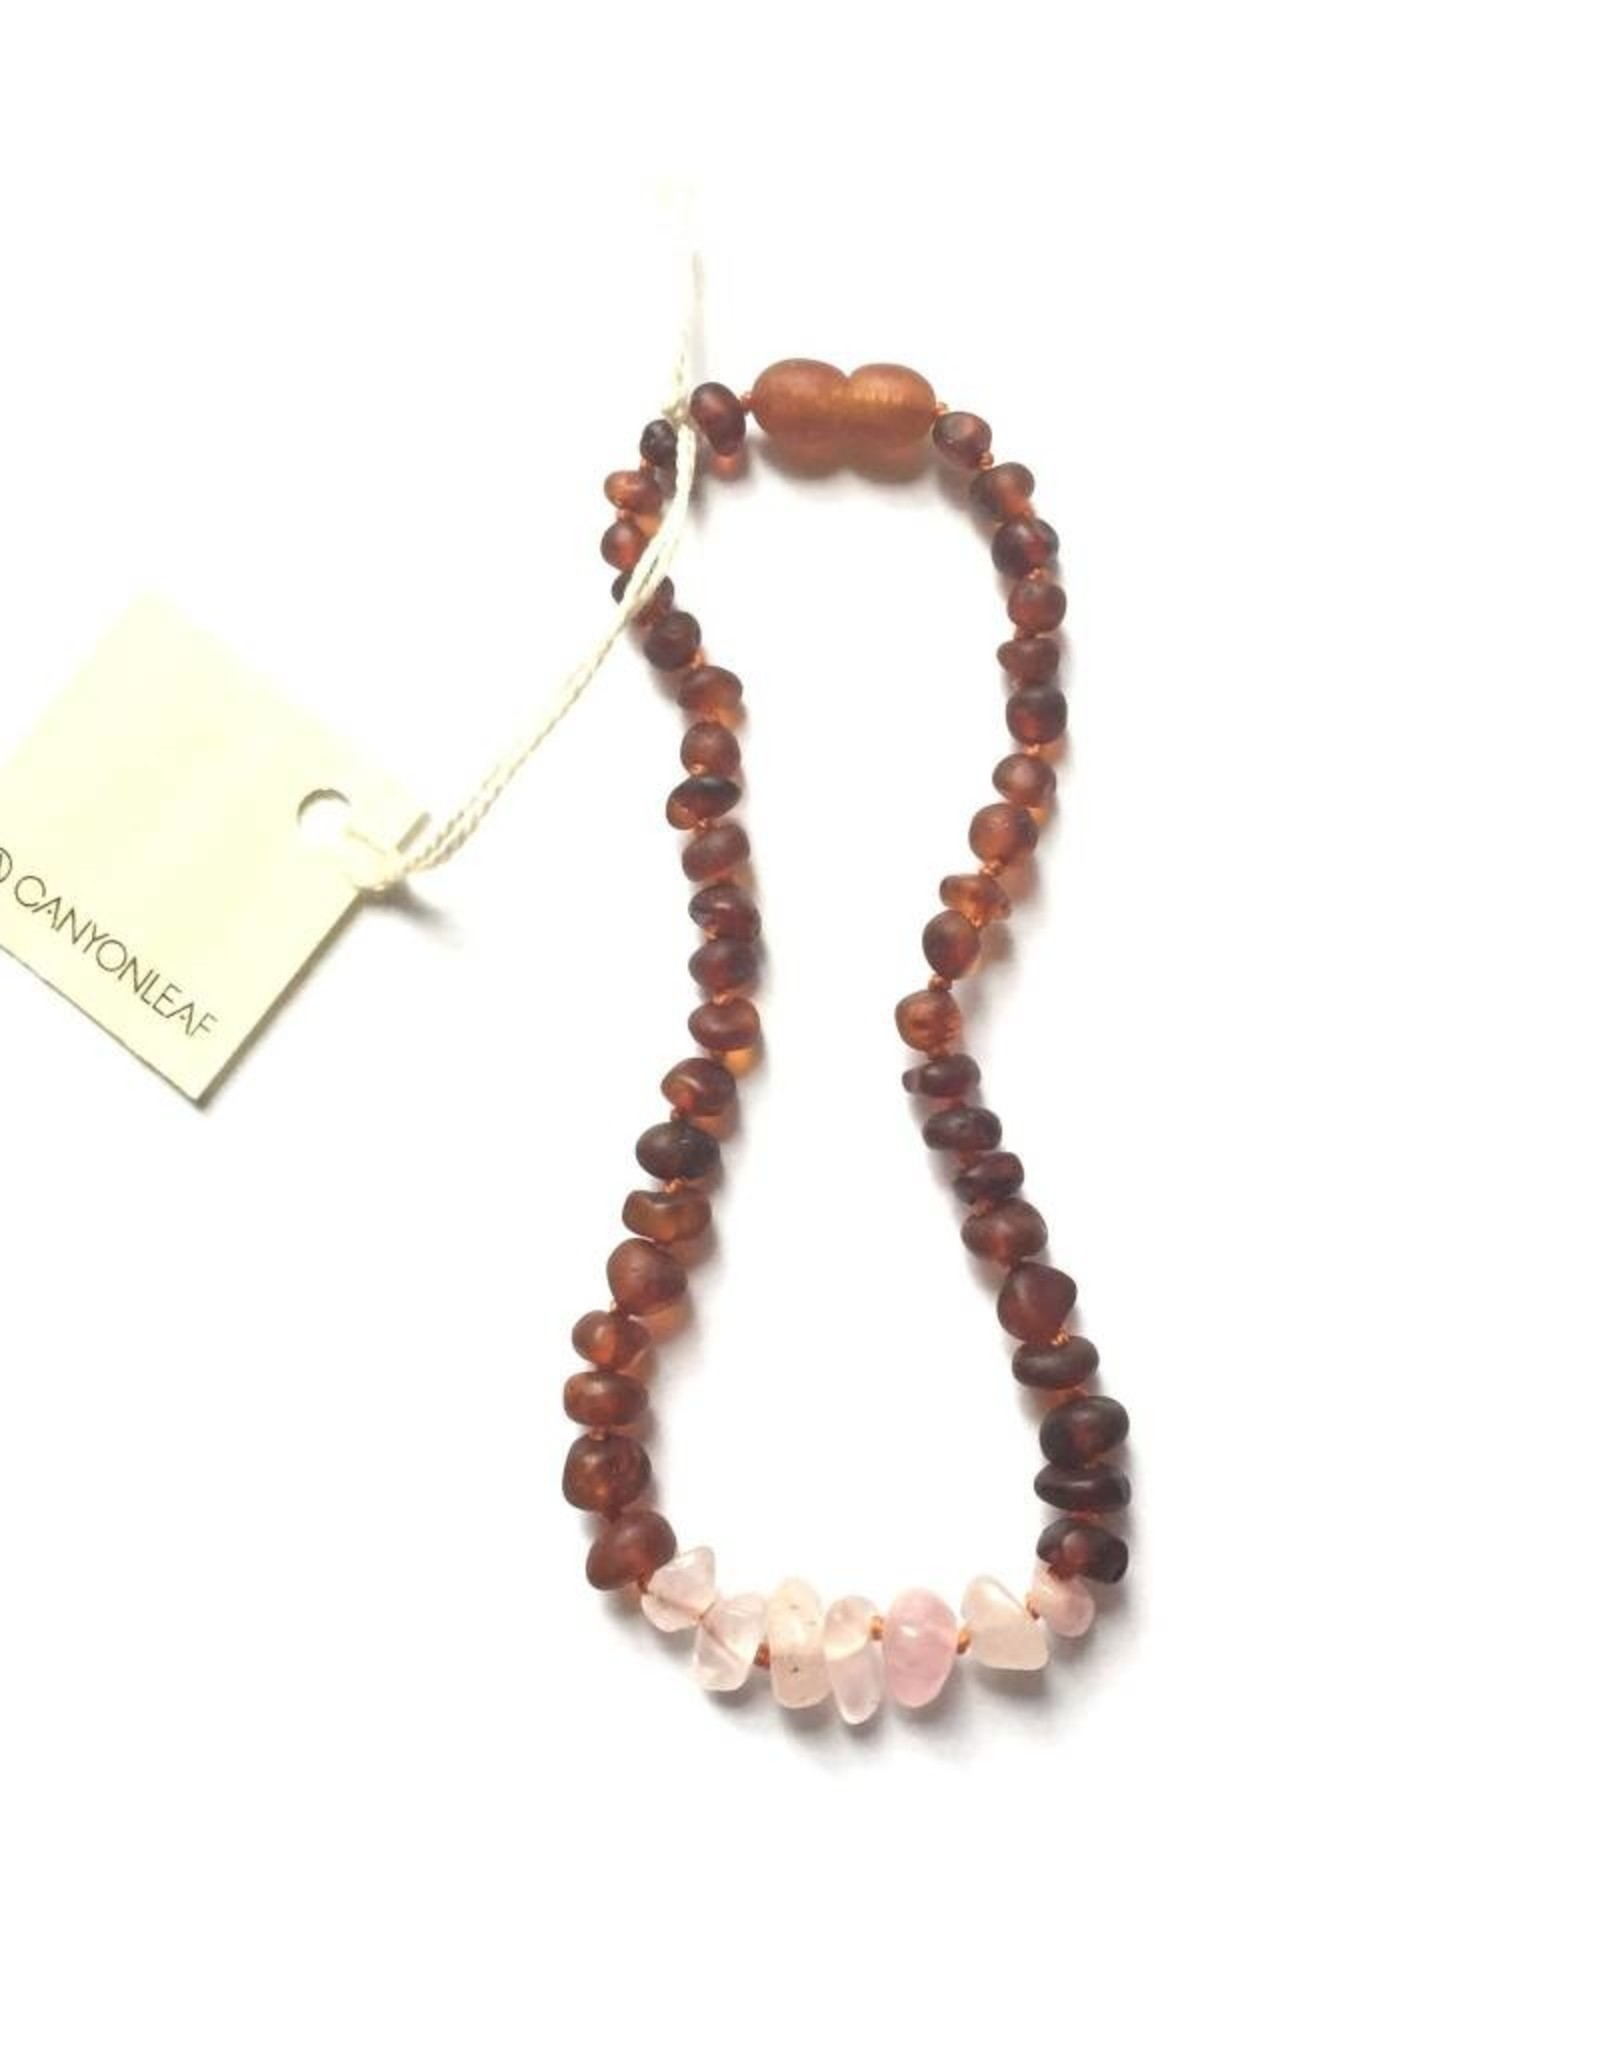 Canyon Leaf Raw Baltic Amber Adult Necklace with Raw Rose Quartz Gems